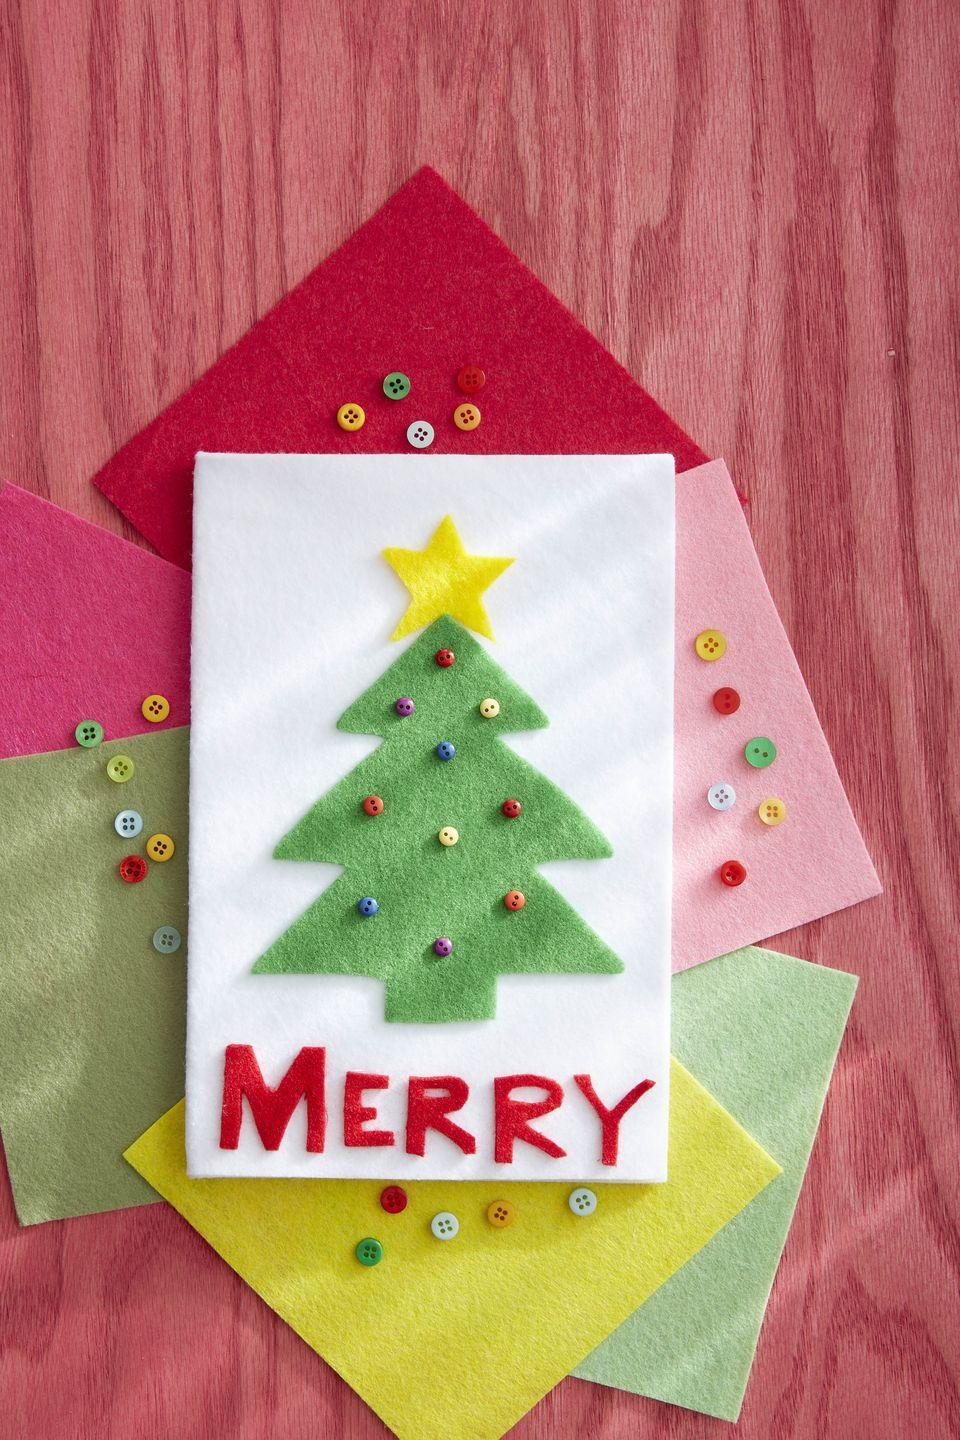 """<p>Soft just like the new slippers you got from Santa, this card is made entirely of felt with button ornament accents. </p><p><strong>To make:</strong> Cut a rectangle from white felt; fold in half to make a card. Cut a tree from green felt and star from yellow felt; glue to the center of the front of the card. Cut letters (you can either freehand them or draw the letters on with a pencil first). Glue letters below the tree. Glue on colorful mini buttons to mimic ornaments.</p><p><a class=""""link rapid-noclick-resp"""" href=""""https://www.amazon.com/flic-flac-inches-Assorted-Fabric-Patchwork/dp/B01N1U85M1/ref=sr_1_6?tag=syn-yahoo-20&ascsubtag=%5Bartid%7C10050.g.3872%5Bsrc%7Cyahoo-us"""" rel=""""nofollow noopener"""" target=""""_blank"""" data-ylk=""""slk:SHOP FELT"""">SHOP FELT</a></p>"""